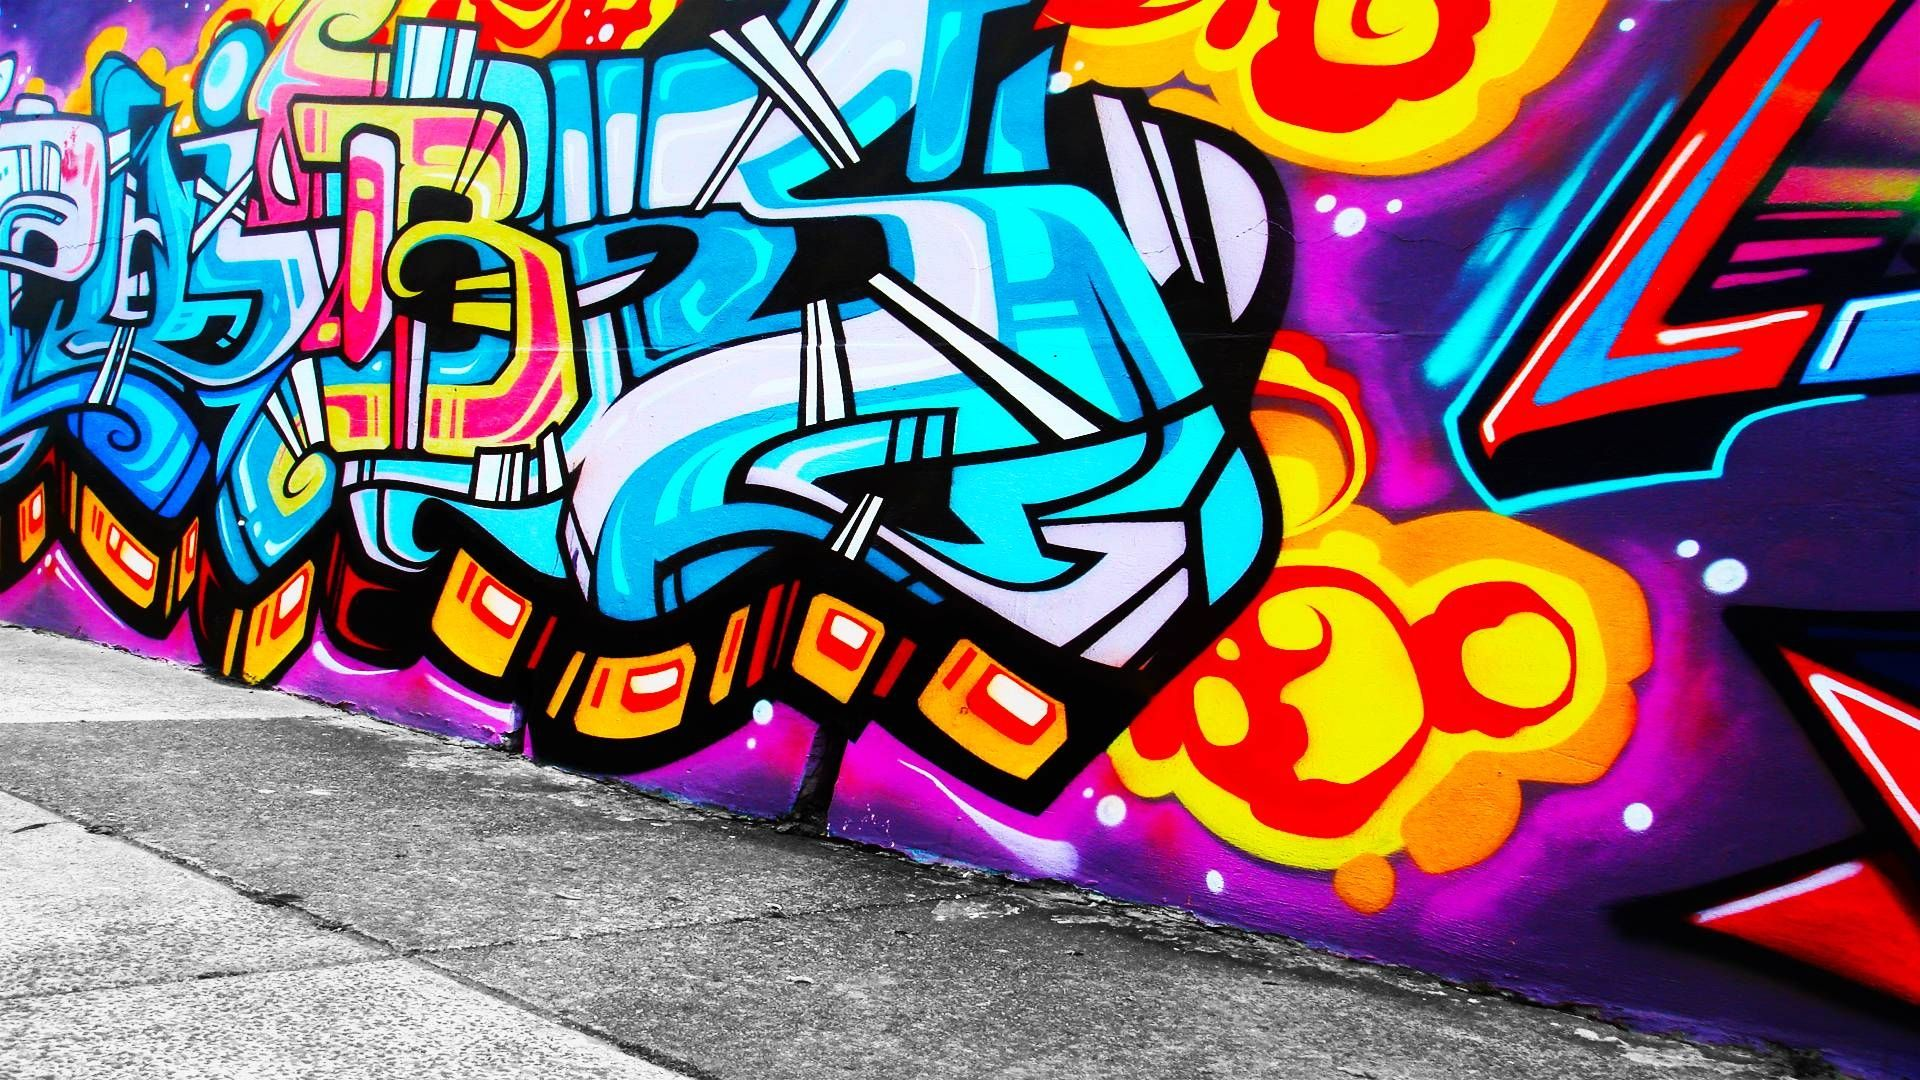 Cool graffiti wallpaper hd download free cool graffiti for Graffiti wallpaper